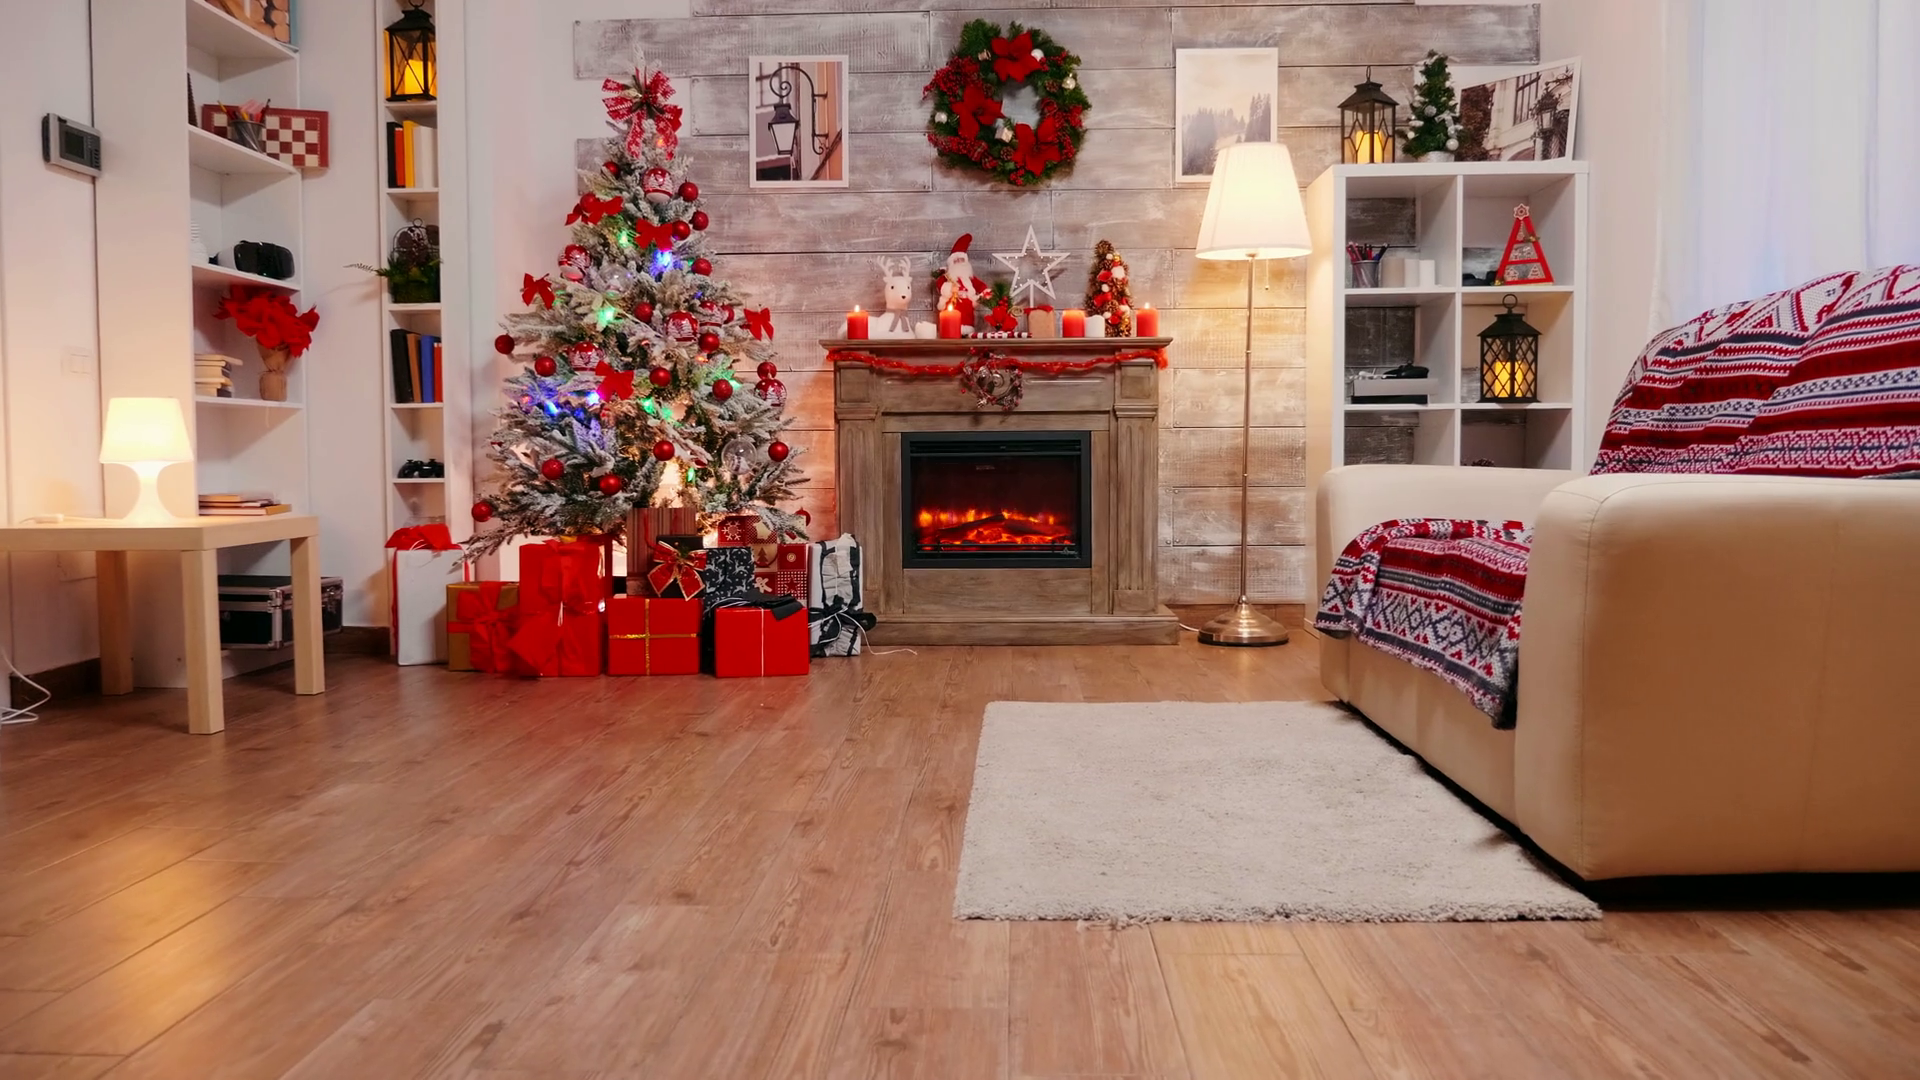 zoom in shot of fireplace burning in a room decorated for christmas celebration stock video footage storyblocks zoom in shot of fireplace burning in a room decorated for christmas celebration